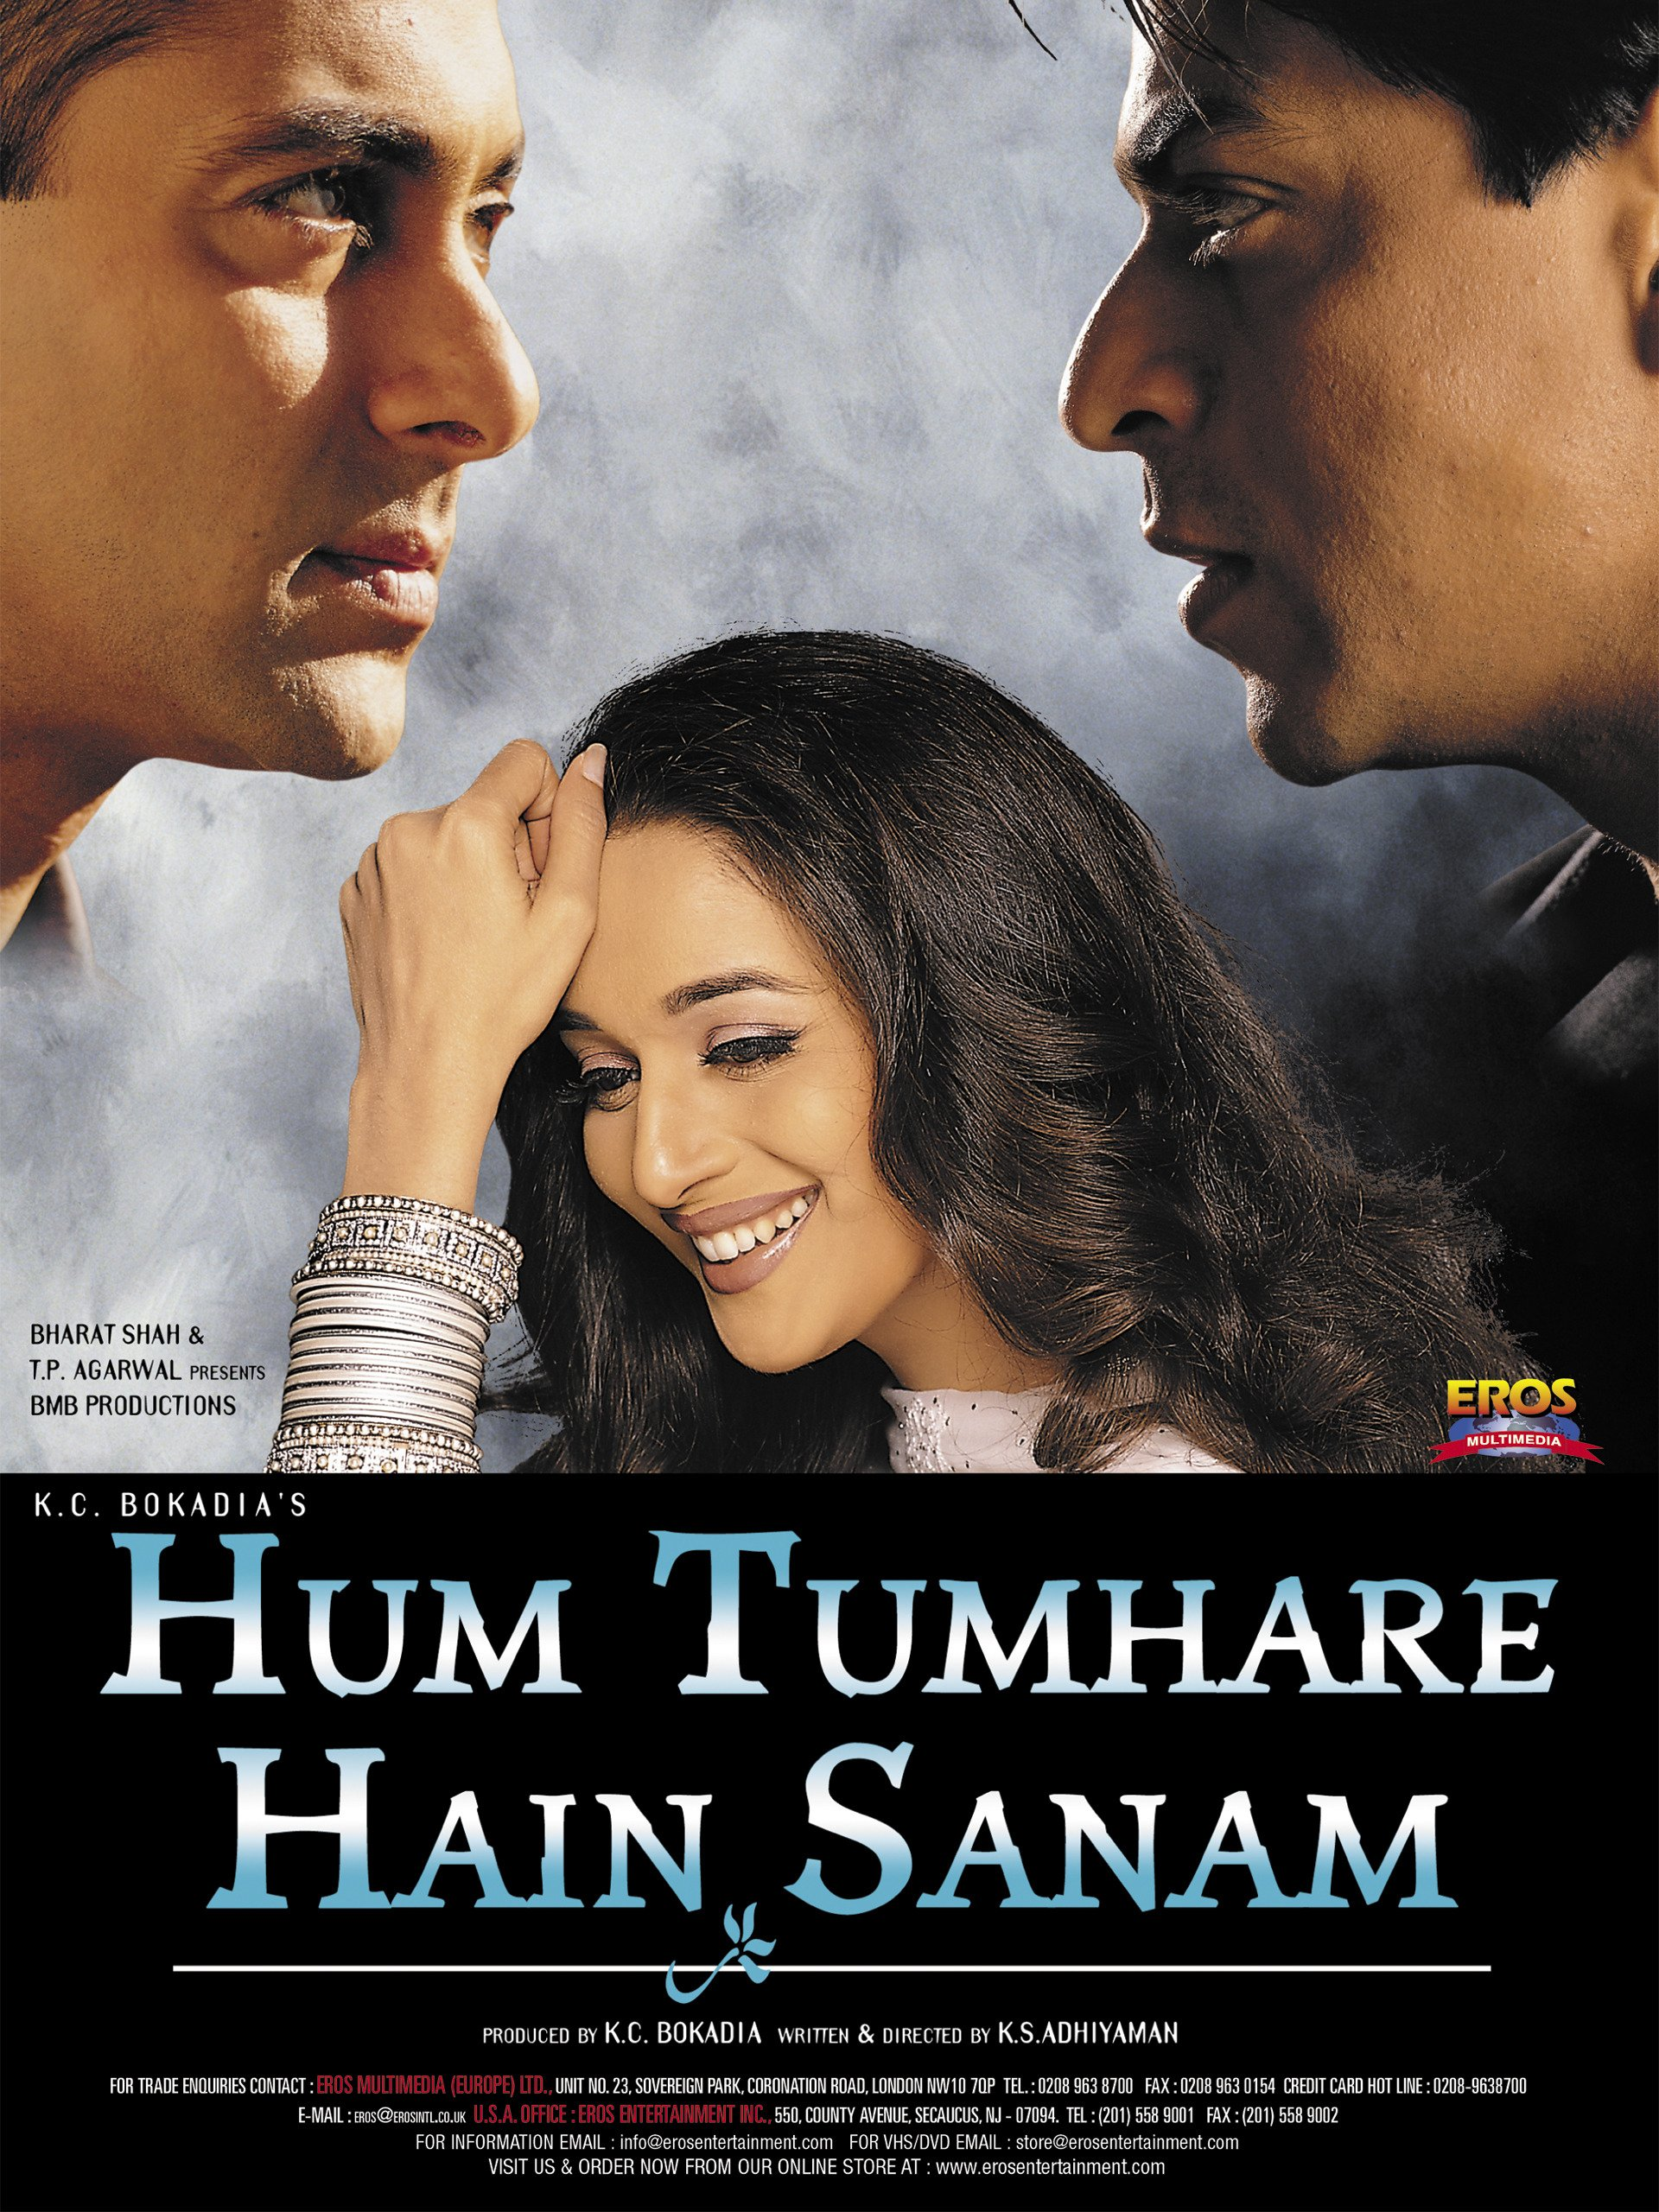 Hum Tumhare Hain Sanam Movie Review Release Date Songs Music Images Official Trailers Videos Photos News Bollywood Hungama